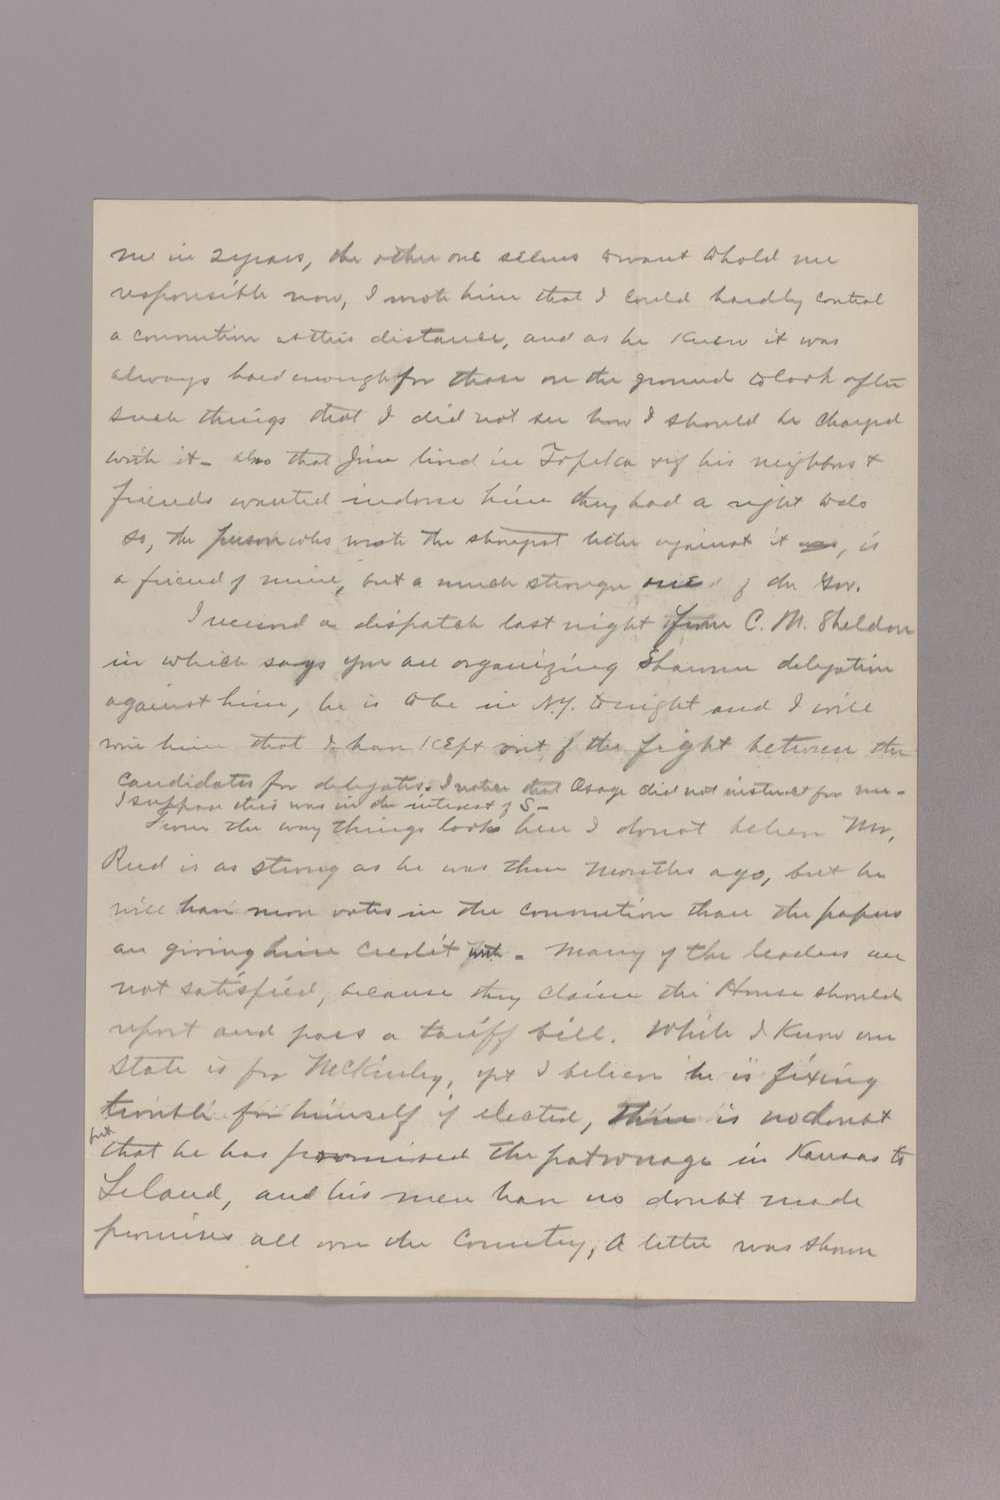 Charles Curtis correspondence, 1895-1896 - 12 March 08, 1896